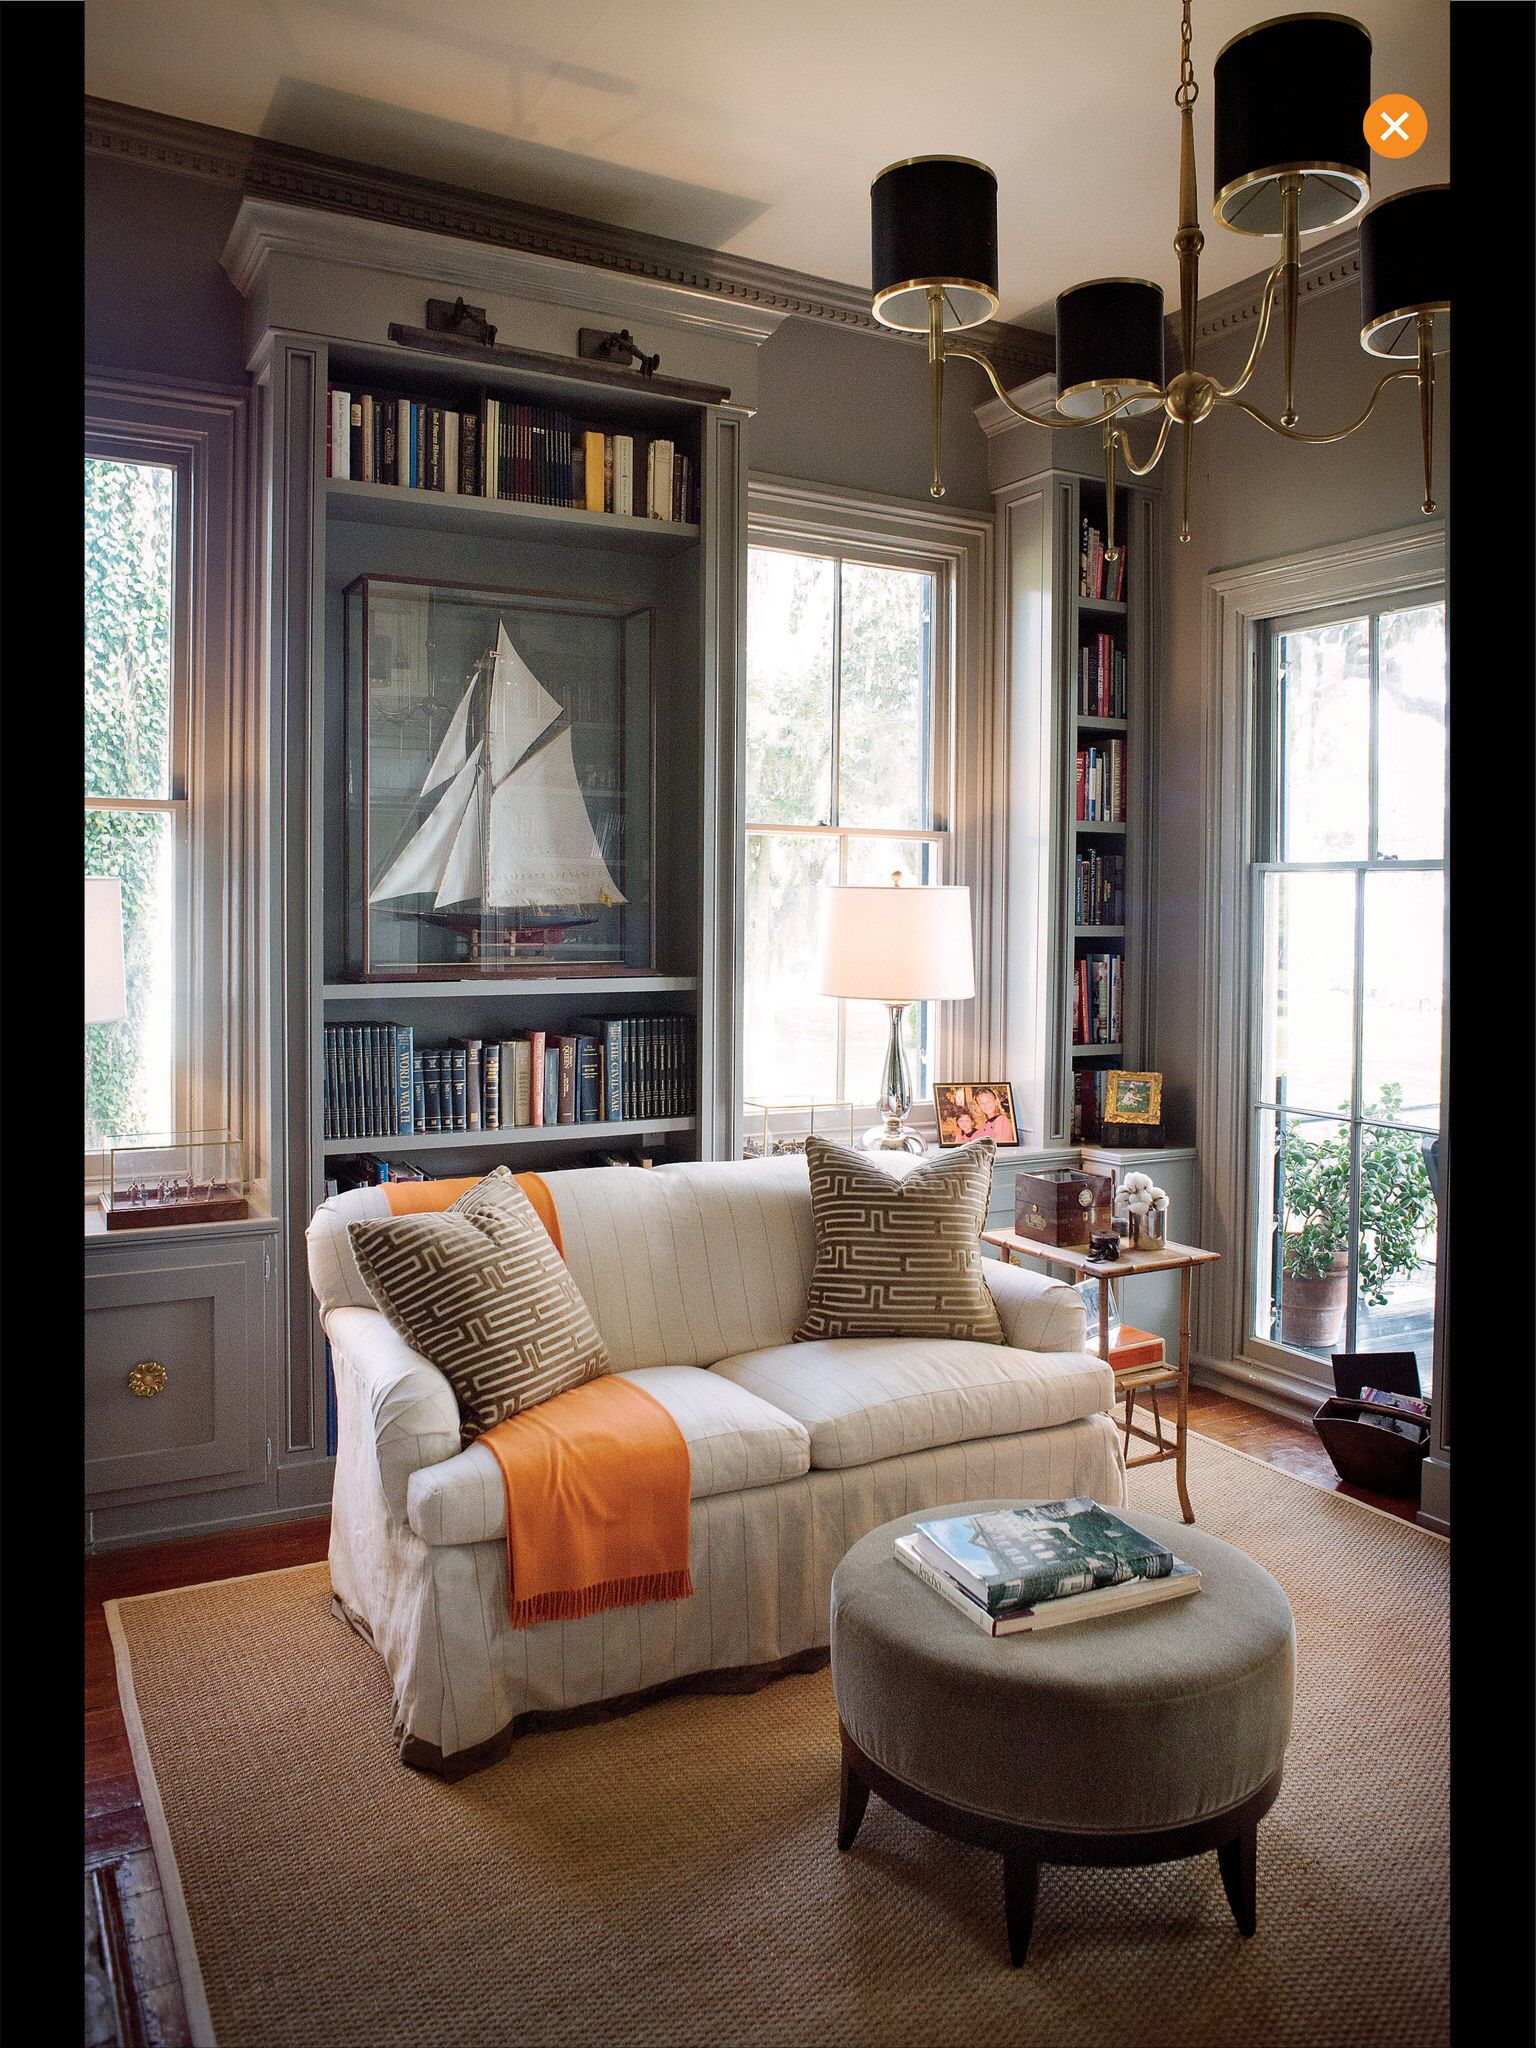 Cozy condo living rooms reading room great colors and style cozy with natural light the